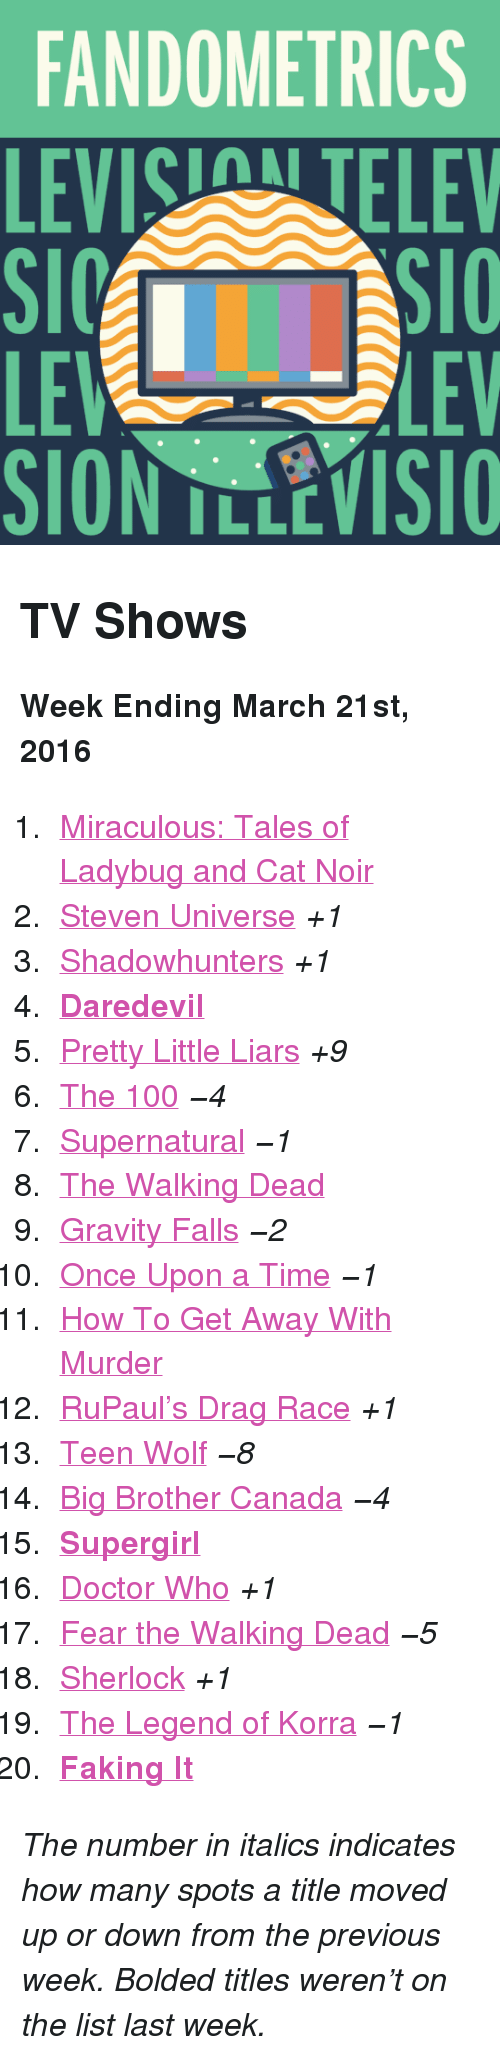 """Anaconda, Doctor, and Teen Wolf: FANDOMETRICS  LEVIS TELEV  LE  SION TLLEVISIO  LEV <h2>TV Shows</h2><p><b>Week Ending March 21st, 2016</b></p><ol><li><a href=""""http://www.tumblr.com/search/miraculous%20ladybug"""">Miraculous: Tales of Ladybug and Cat Noir</a></li>  <li><a href=""""http://www.tumblr.com/search/steven%20universe"""">Steven Universe</a><i>+1</i></li>  <li><a href=""""http://www.tumblr.com/search/shadowhunters"""">Shadowhunters</a><i>+1</i></li>  <li><a href=""""http://www.tumblr.com/search/daredevil""""><b>Daredevil</b></a></li>  <li><a href=""""http://www.tumblr.com/search/pretty%20little%20liars"""">Pretty Little Liars</a><i>+9</i></li>  <li><a href=""""http://www.tumblr.com/search/the%20100"""">The 100</a><i>−4</i></li>  <li><a href=""""http://www.tumblr.com/search/supernatural"""">Supernatural</a><i>−1</i></li>  <li><a href=""""http://www.tumblr.com/search/the%20walking%20dead"""">The Walking Dead</a></li>  <li><a href=""""http://www.tumblr.com/search/gravity%20falls"""">Gravity Falls</a><i>−2</i></li>  <li><a href=""""http://www.tumblr.com/search/ouat"""">Once Upon a Time</a><i>−1</i></li>  <li><a href=""""http://www.tumblr.com/search/how%20to%20get%20away%20with%20murder"""">How To Get Away With Murder</a></li>  <li><a href=""""http://www.tumblr.com/search/rupaul's%20drag%20race"""">RuPaul&rsquo;s Drag Race</a><i>+1</i></li>  <li><a href=""""http://www.tumblr.com/search/teen%20wolf"""">Teen Wolf</a><i>−8</i></li>  <li><a href=""""http://www.tumblr.com/search/bbcan4"""">Big Brother Canada</a><i>−4</i></li>  <li><a href=""""http://www.tumblr.com/search/supergirl""""><b>Supergirl</b></a></li>  <li><a href=""""http://www.tumblr.com/search/doctor%20who"""">Doctor Who</a><i>+1</i></li>  <li><a href=""""http://www.tumblr.com/search/fear%20the%20walking%20dead"""">Fear the Walking Dead</a><i>−5</i></li>  <li><a href=""""http://www.tumblr.com/search/sherlock"""">Sherlock</a><i>+1</i></li>  <li><a href=""""http://www.tumblr.com/search/legend%20of%20korra"""">The Legend of Korra</a><i>−1</i></li>  <li><a href=""""http://www.tumblr.com/search/faking%20it""""><b>Faking It</"""